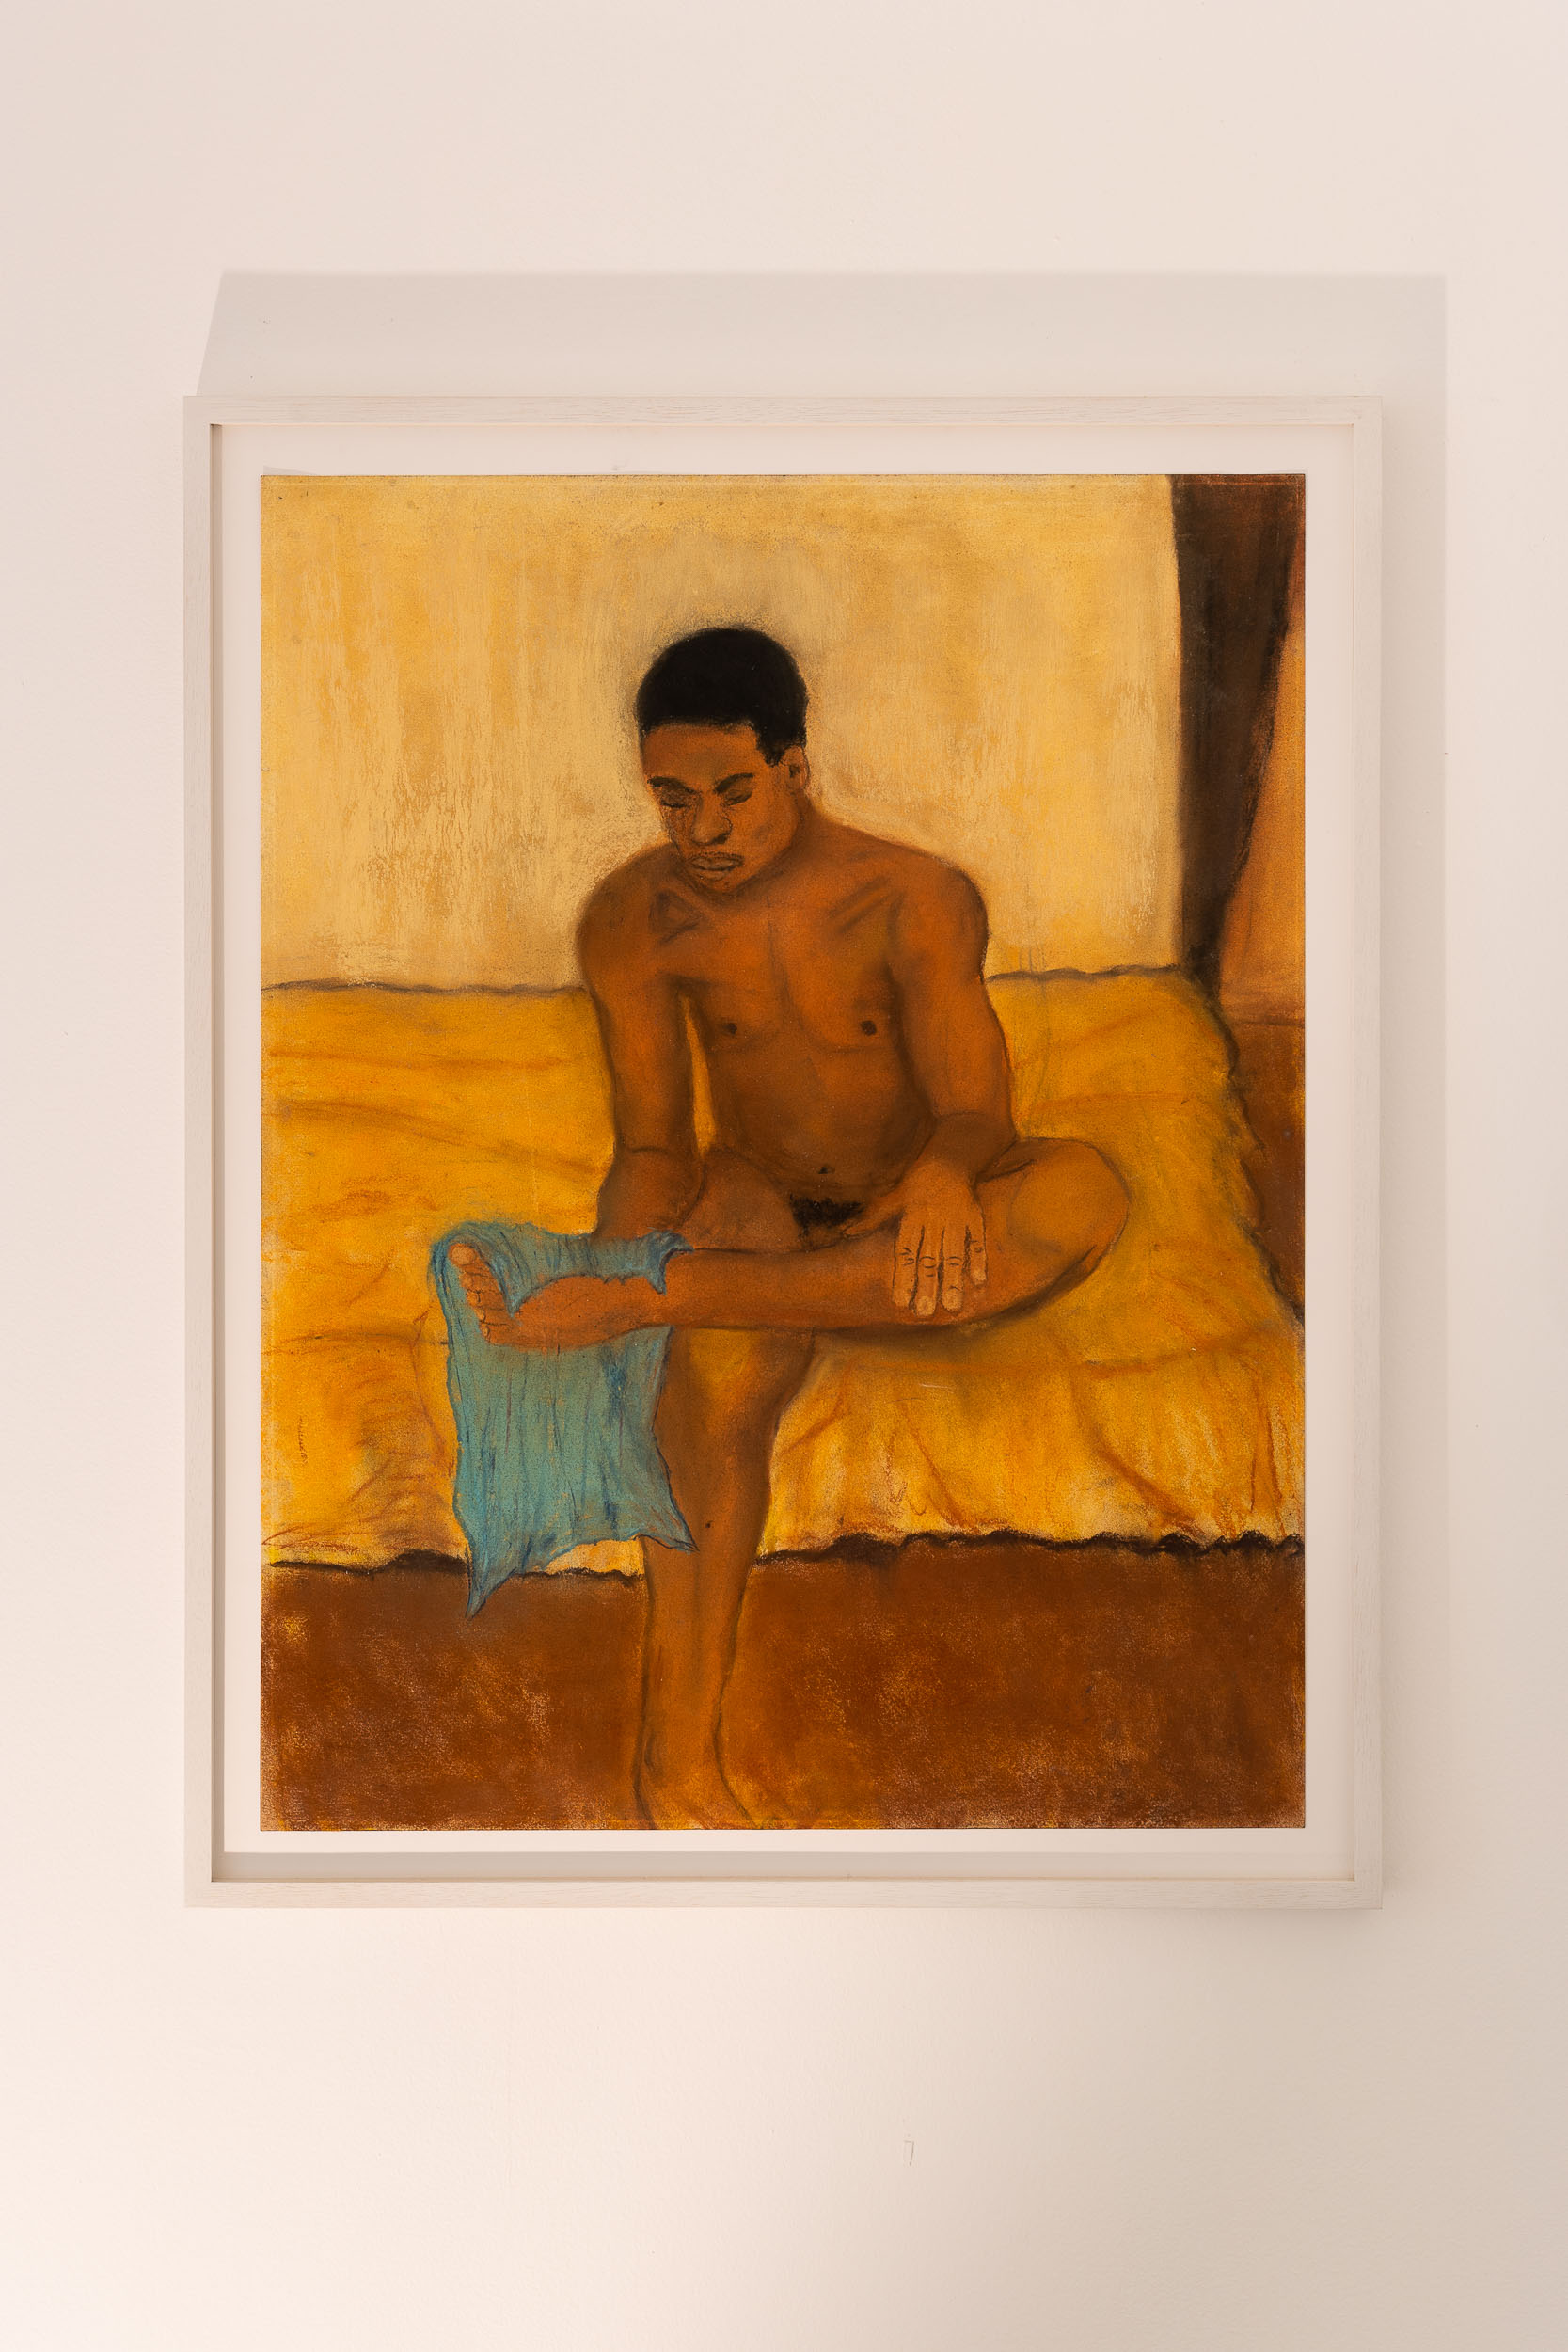 Dieter Hall,  Turquoise towel,  1999-2000, Pastel on paper, 64 x 50 cm / 72 x 57 cm (framed)  Photo: Kilian Bannwart